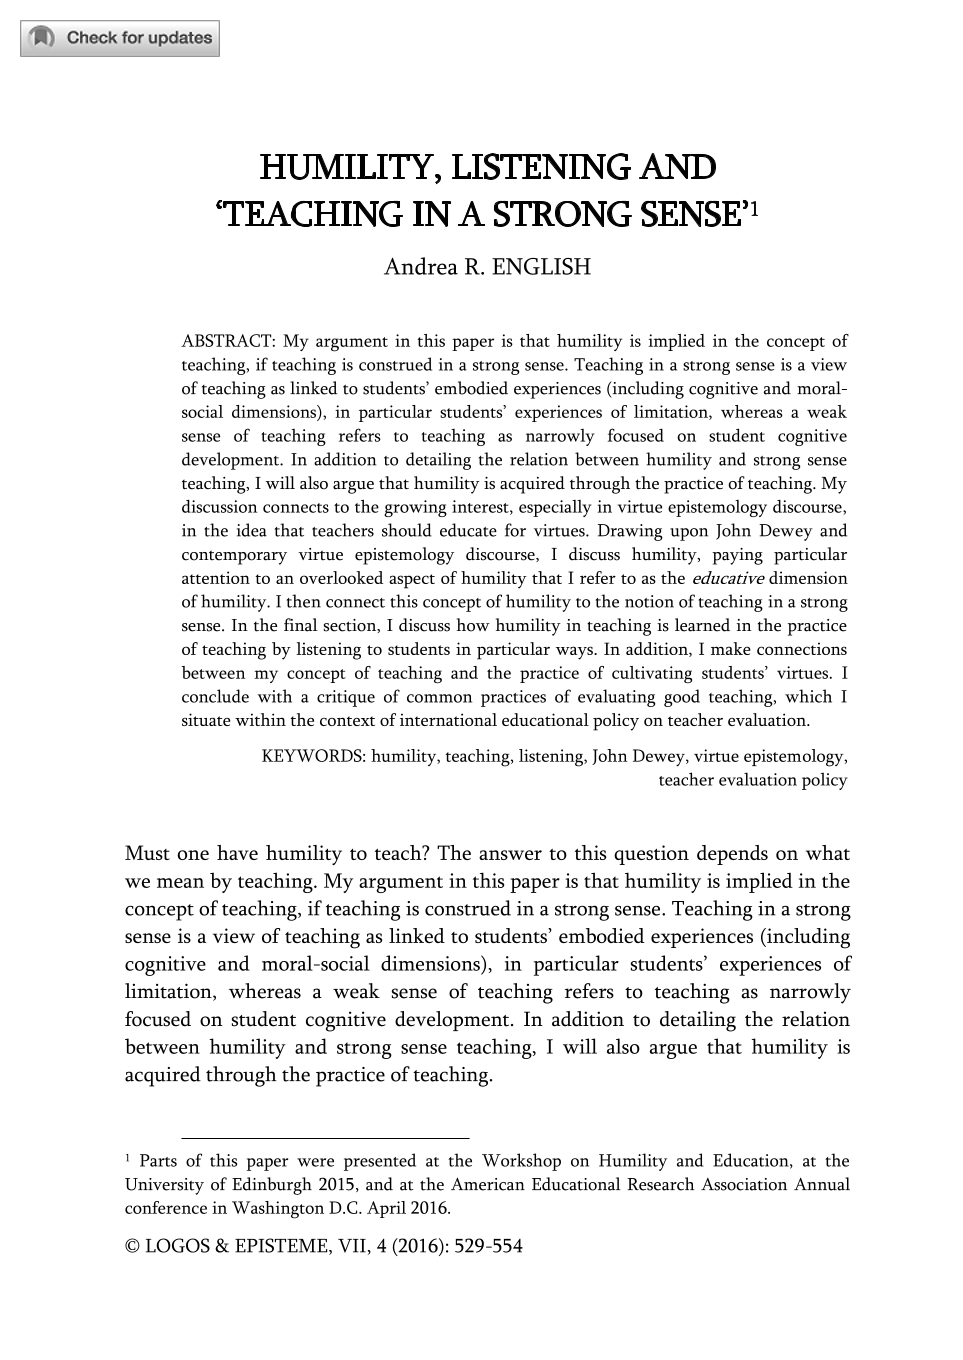 humility listening and teaching in a strong sense andrea r document is being loaded